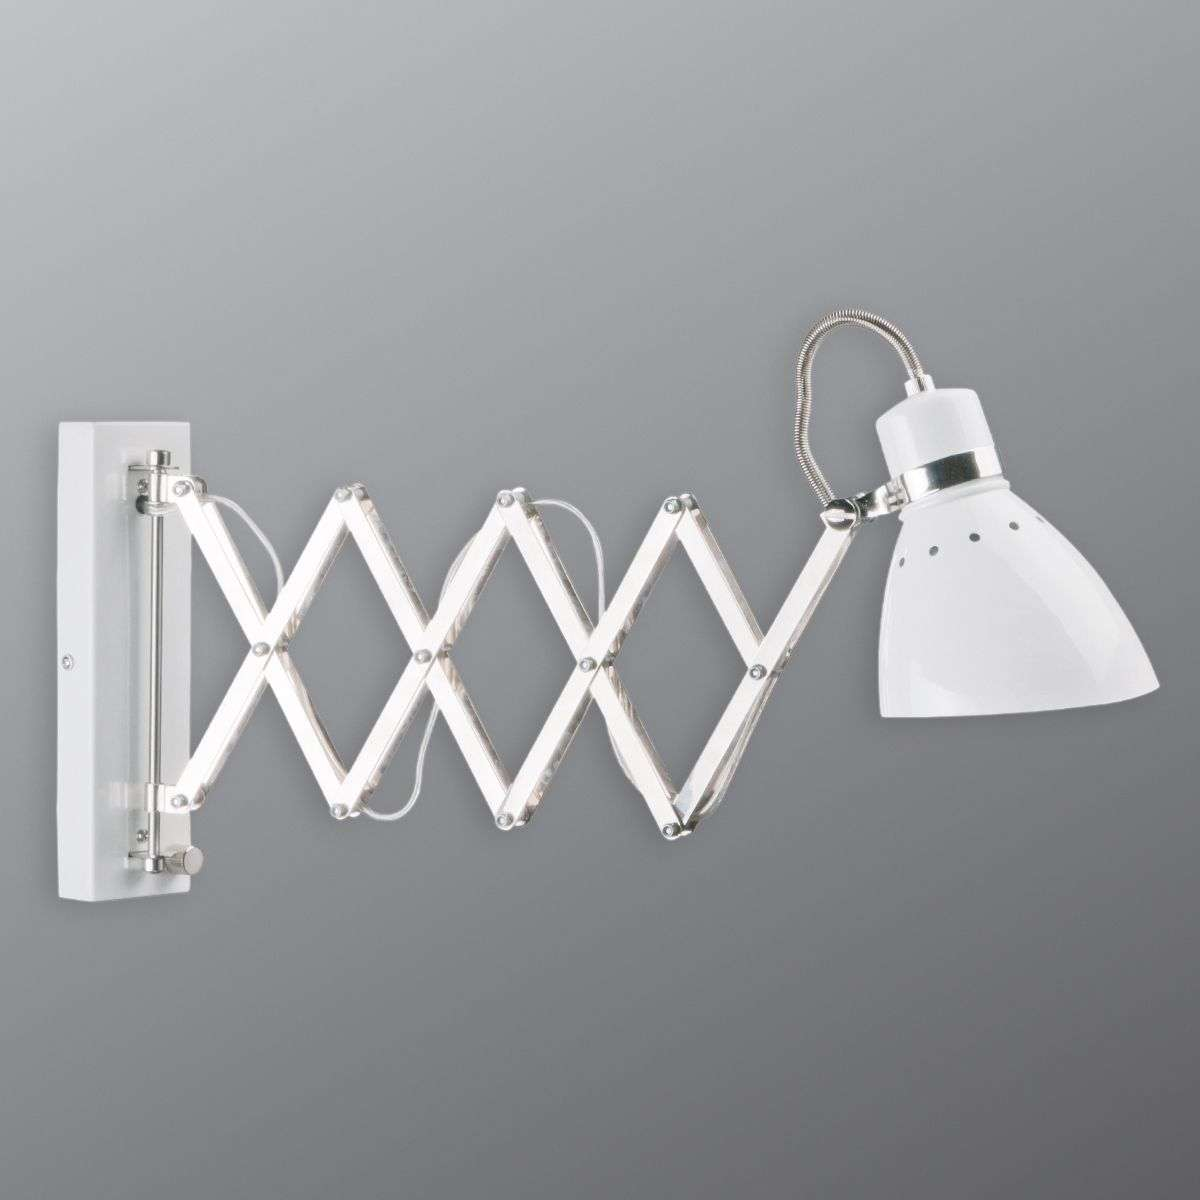 Pull out metal wall light kordian white lights pull out metal wall light kordian white 8509629 31 aloadofball Images